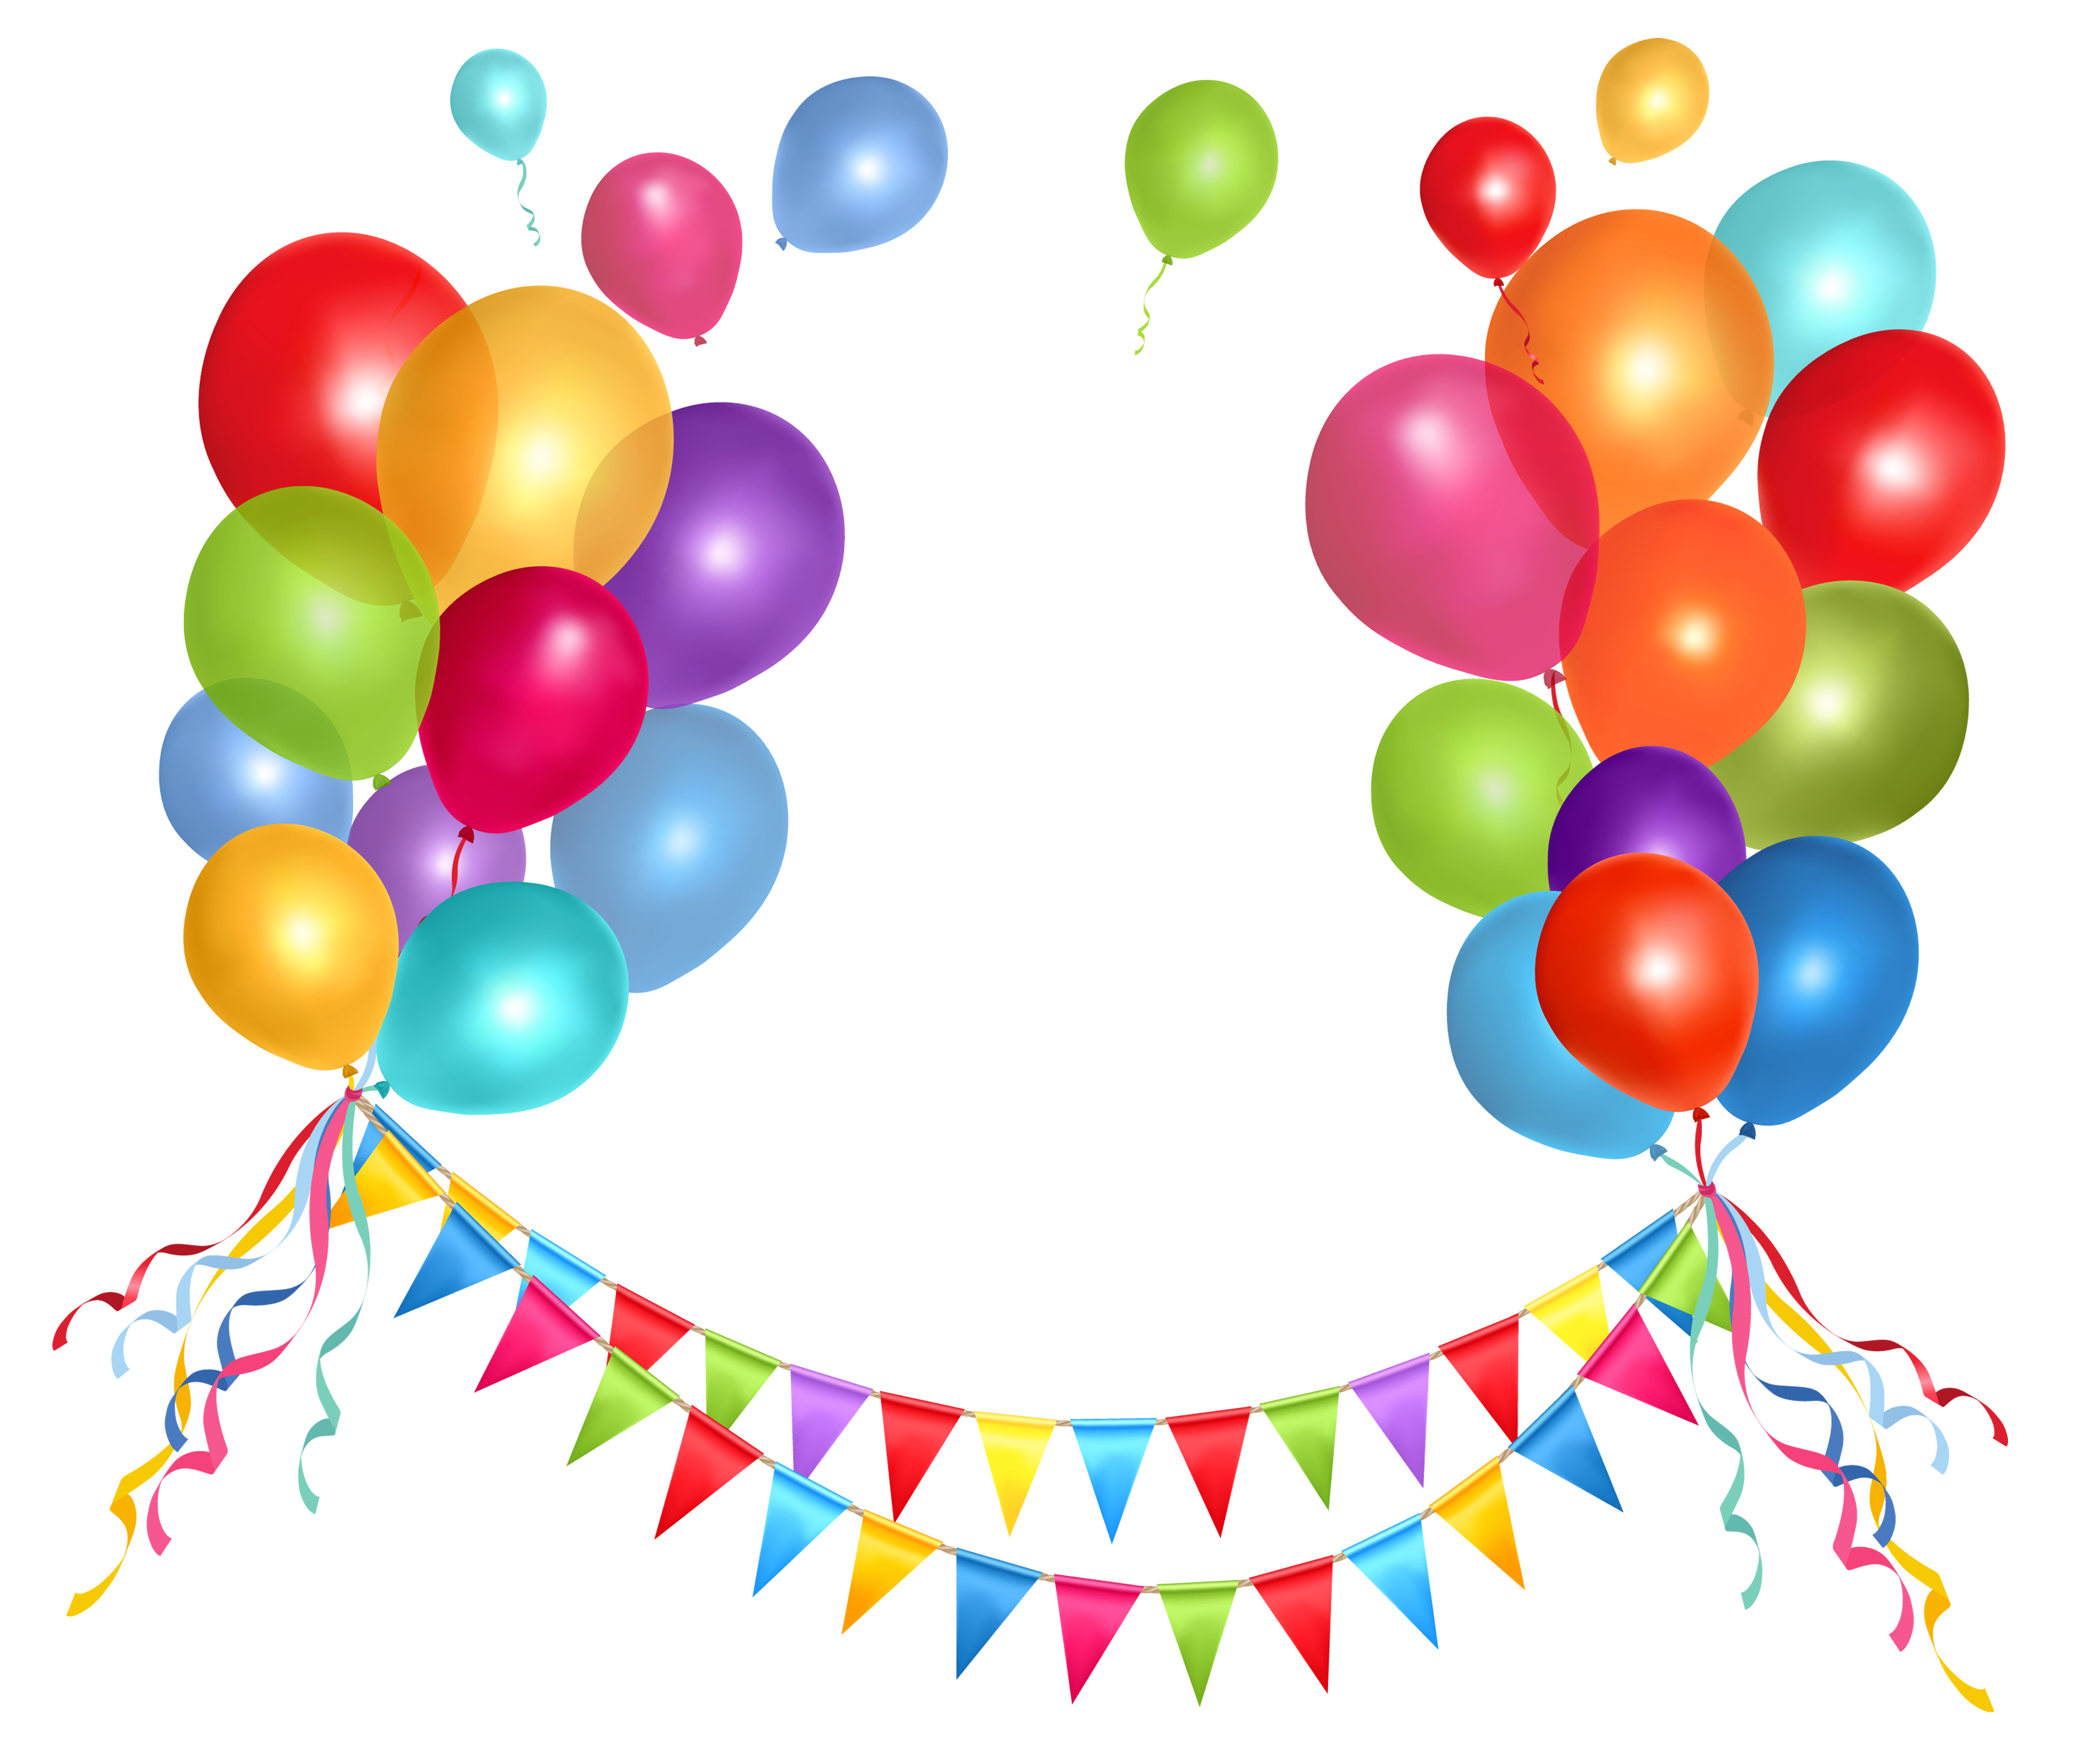 banner free download Transparent party streamer and. Celebrate clipart birthday decoration.